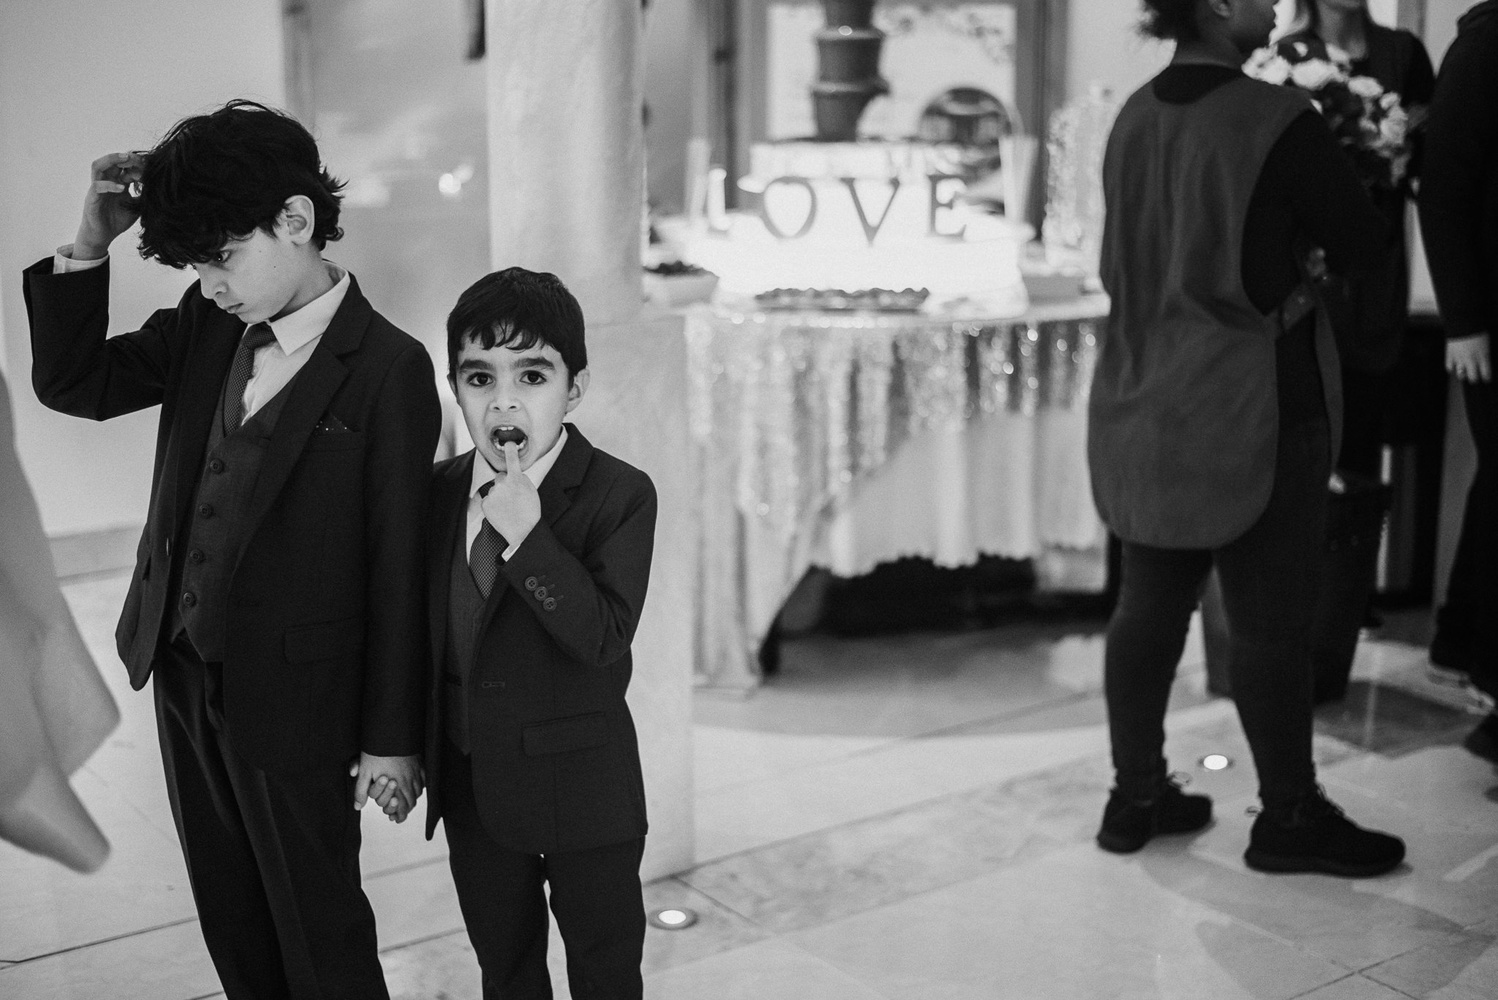 Two young boys at a wedding.